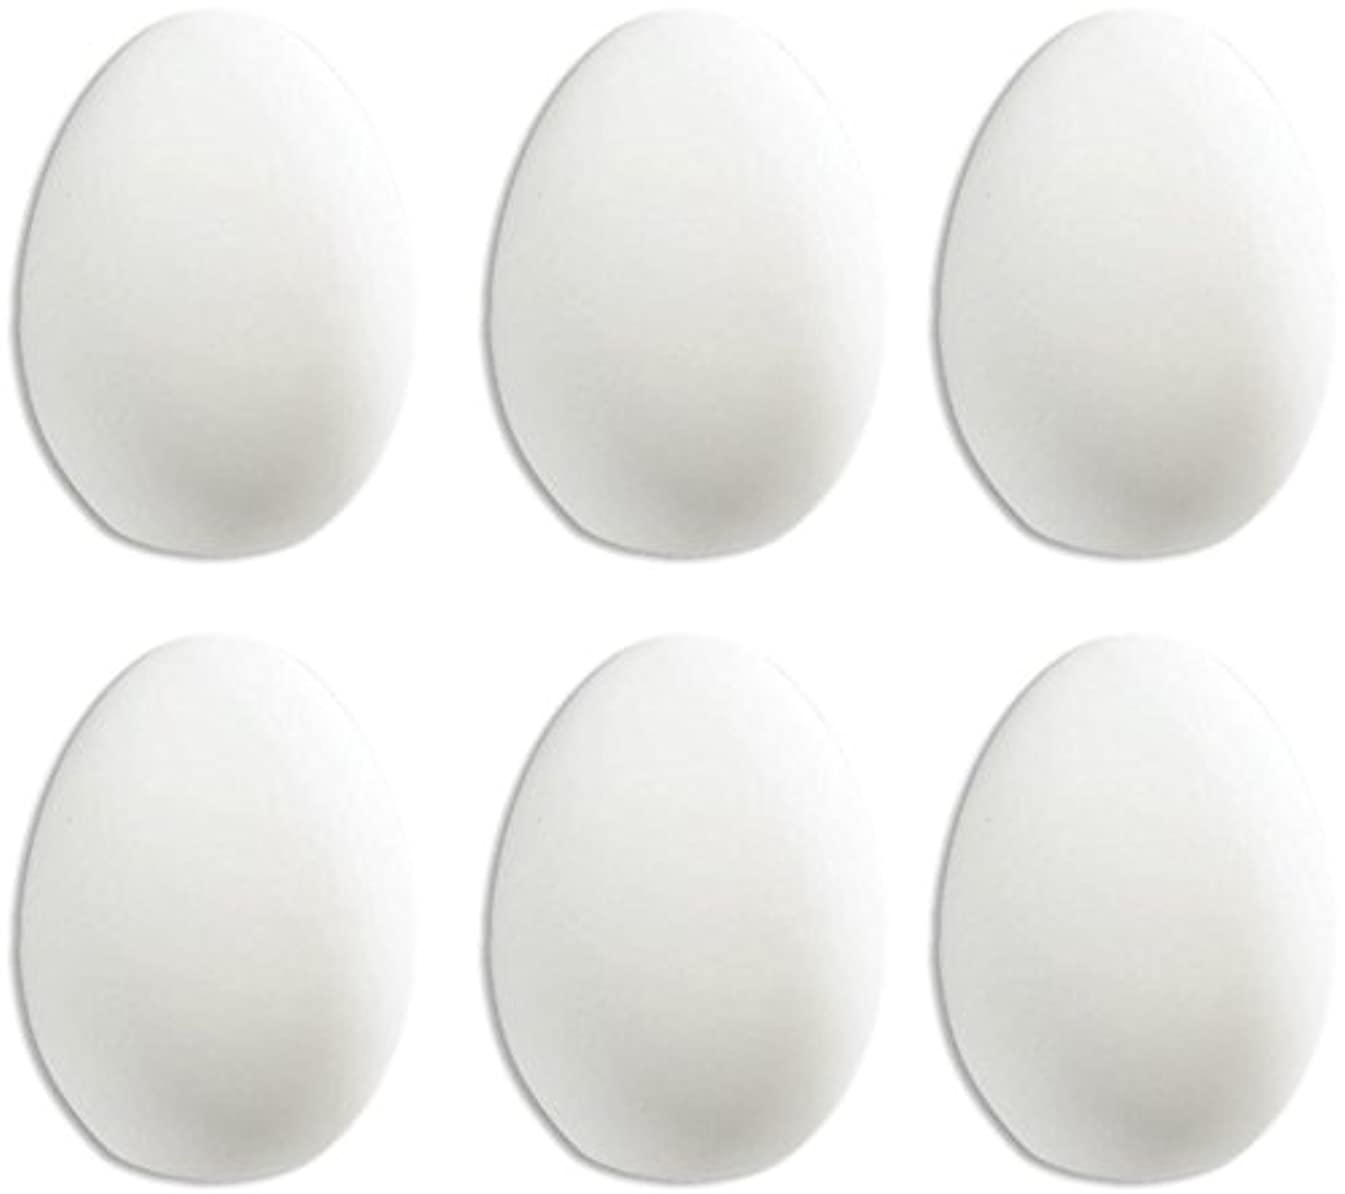 Easter Eggs - Set of 6 - Host Your Own Egg-Tastic Ceramic Painting Party